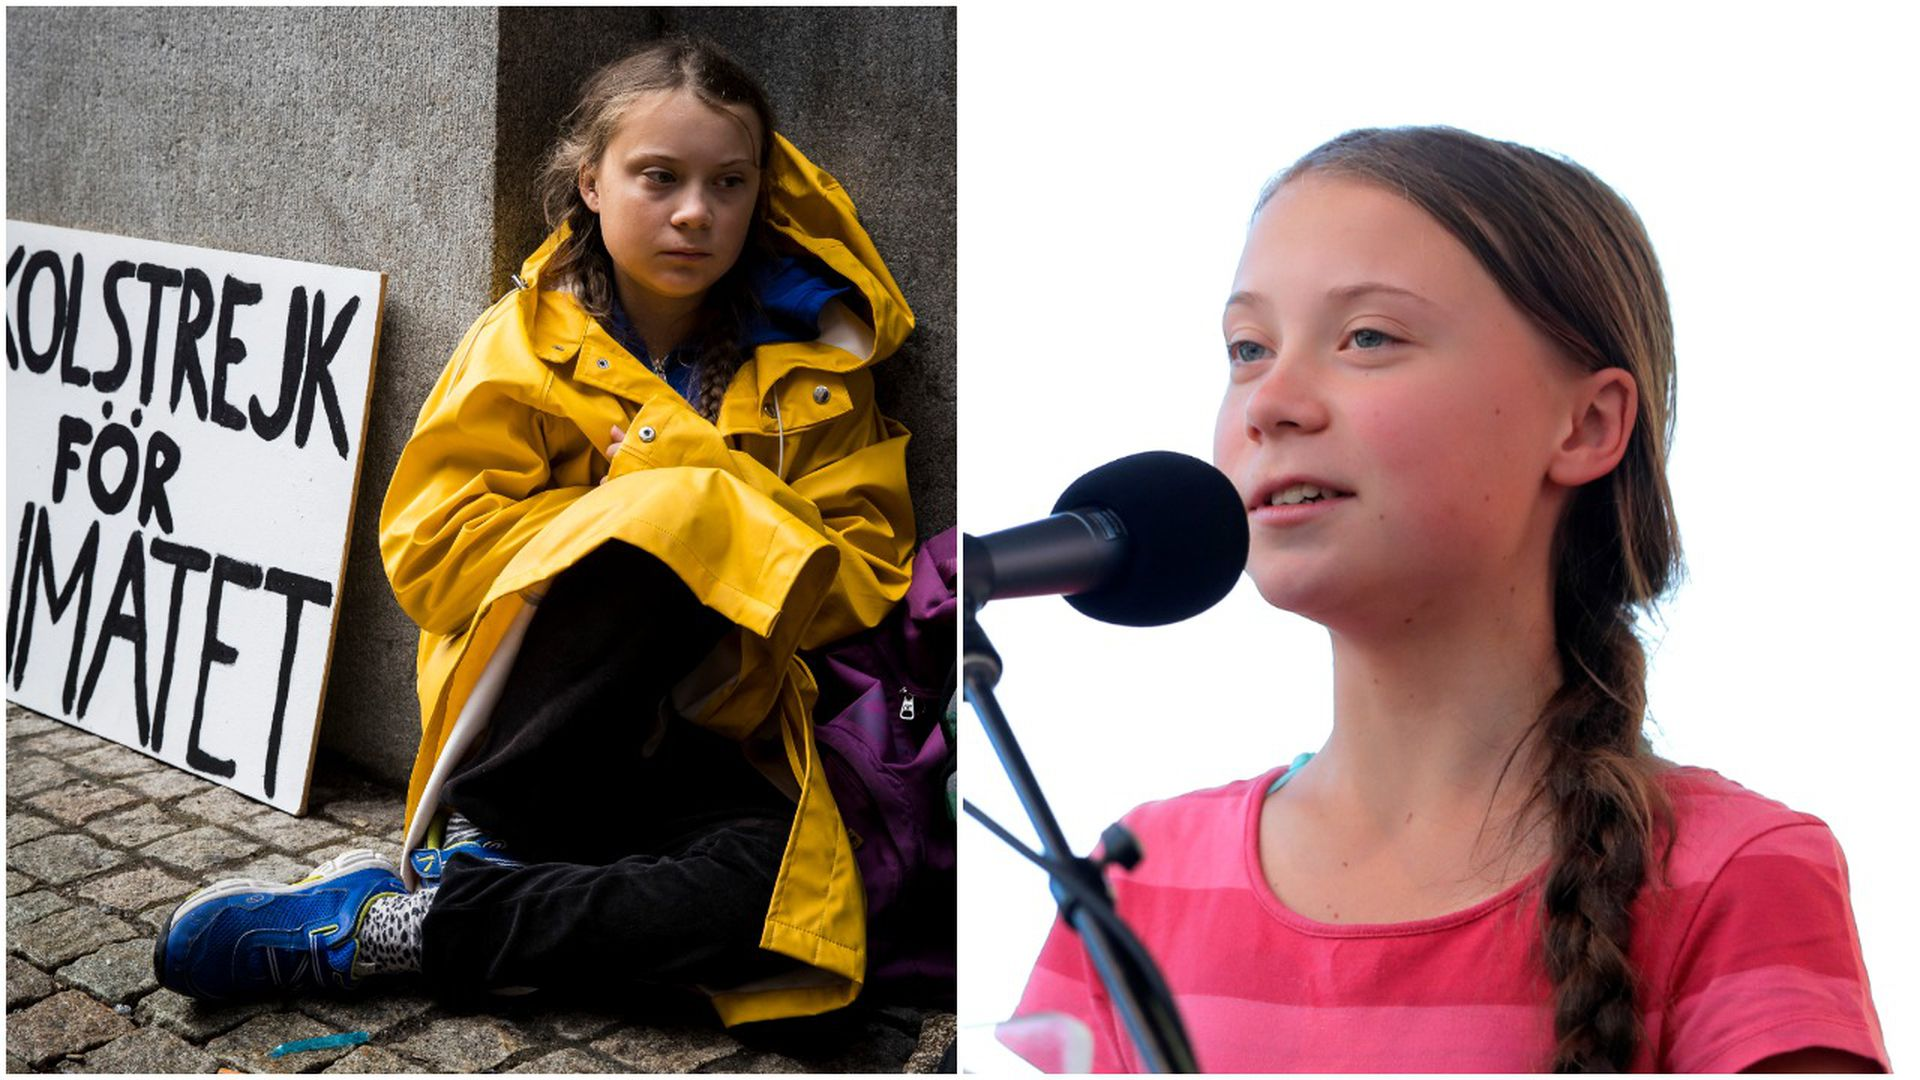 This image is a two-way screen of Greta Thunberg sitting in a yellow raincoat and Greta speaking into a microphone.